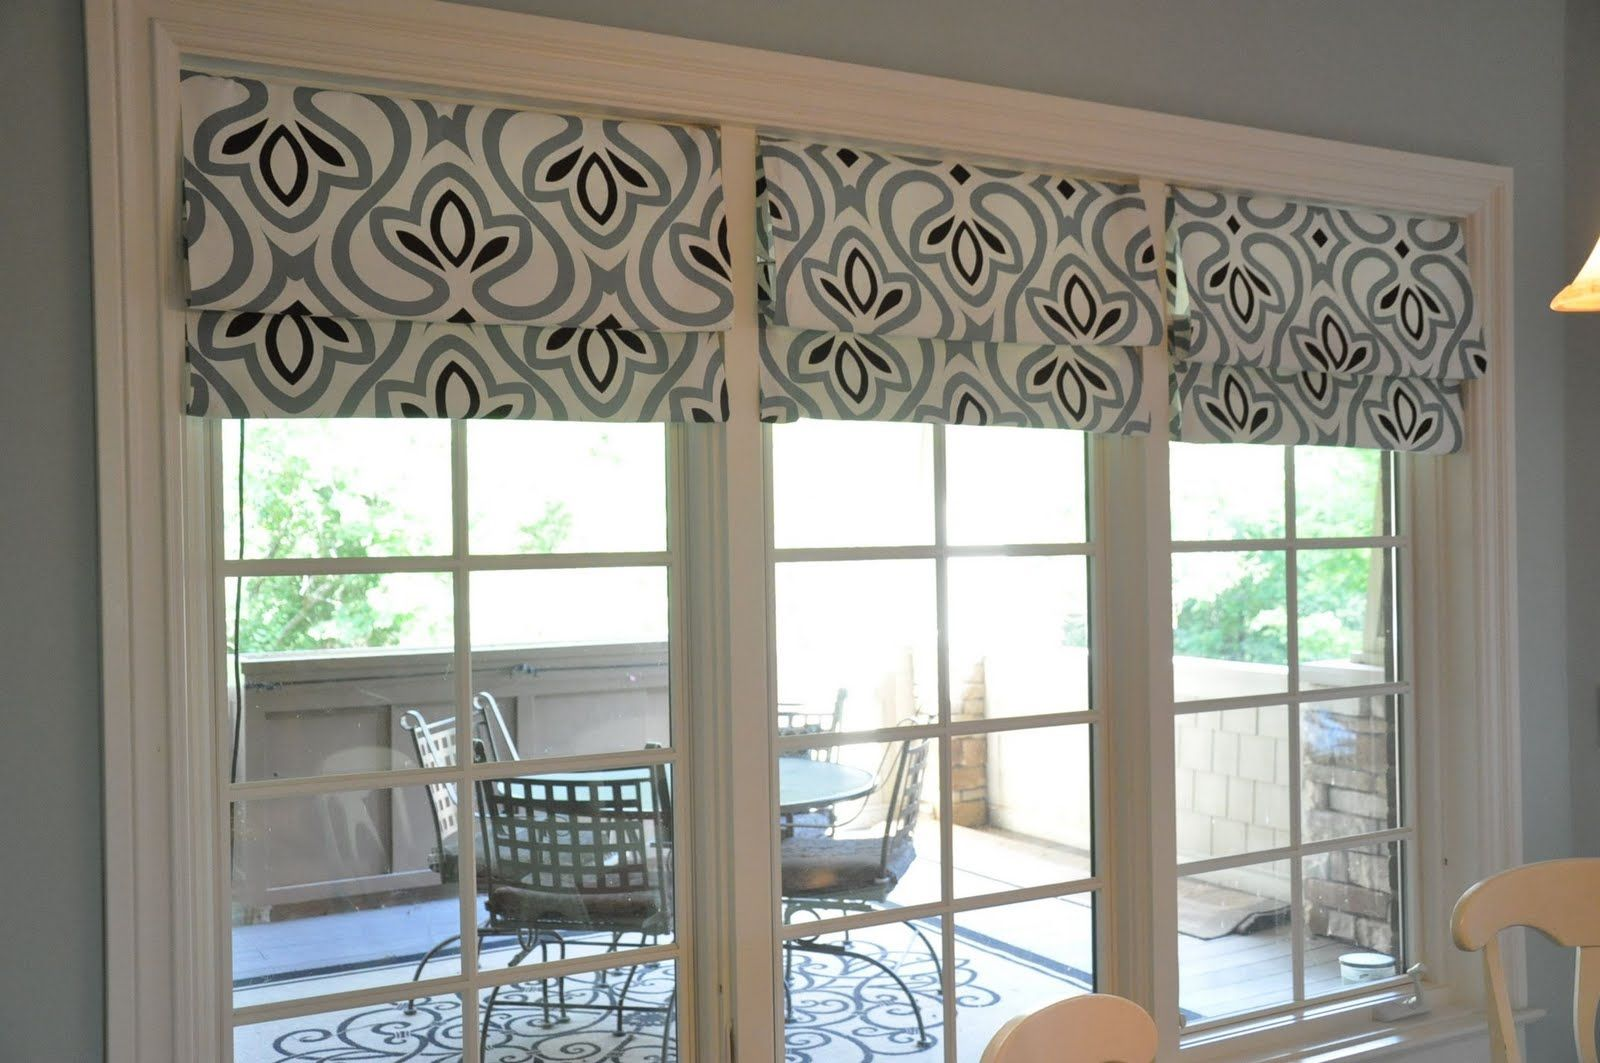 Window treatment ideas for above kitchen sink  this fake nosew roman shades might just work for the window